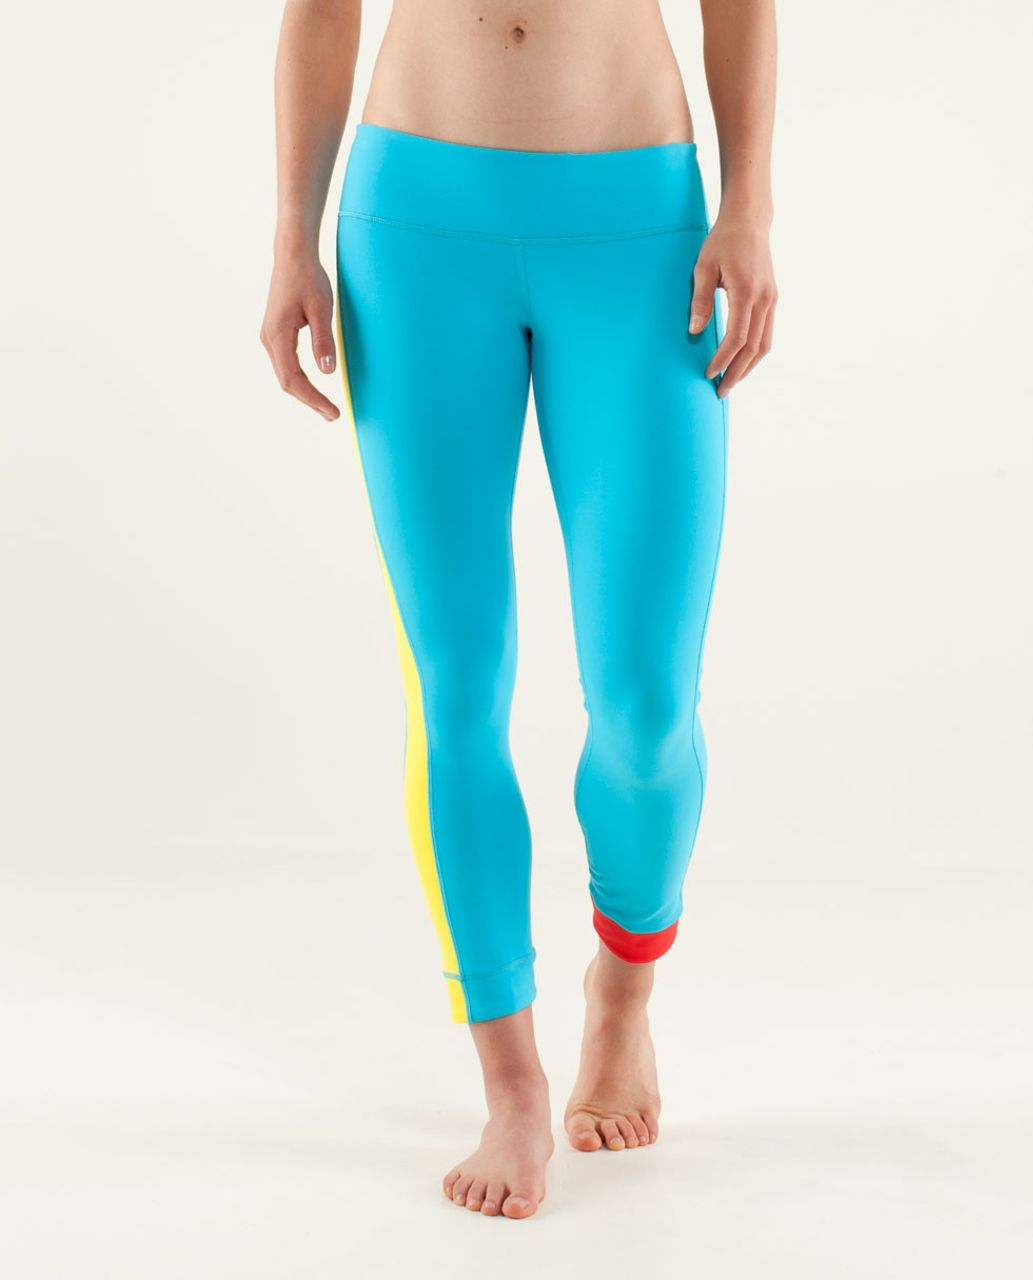 Lululemon Amped Crop - Spry Blue / Sizzle / Love Red